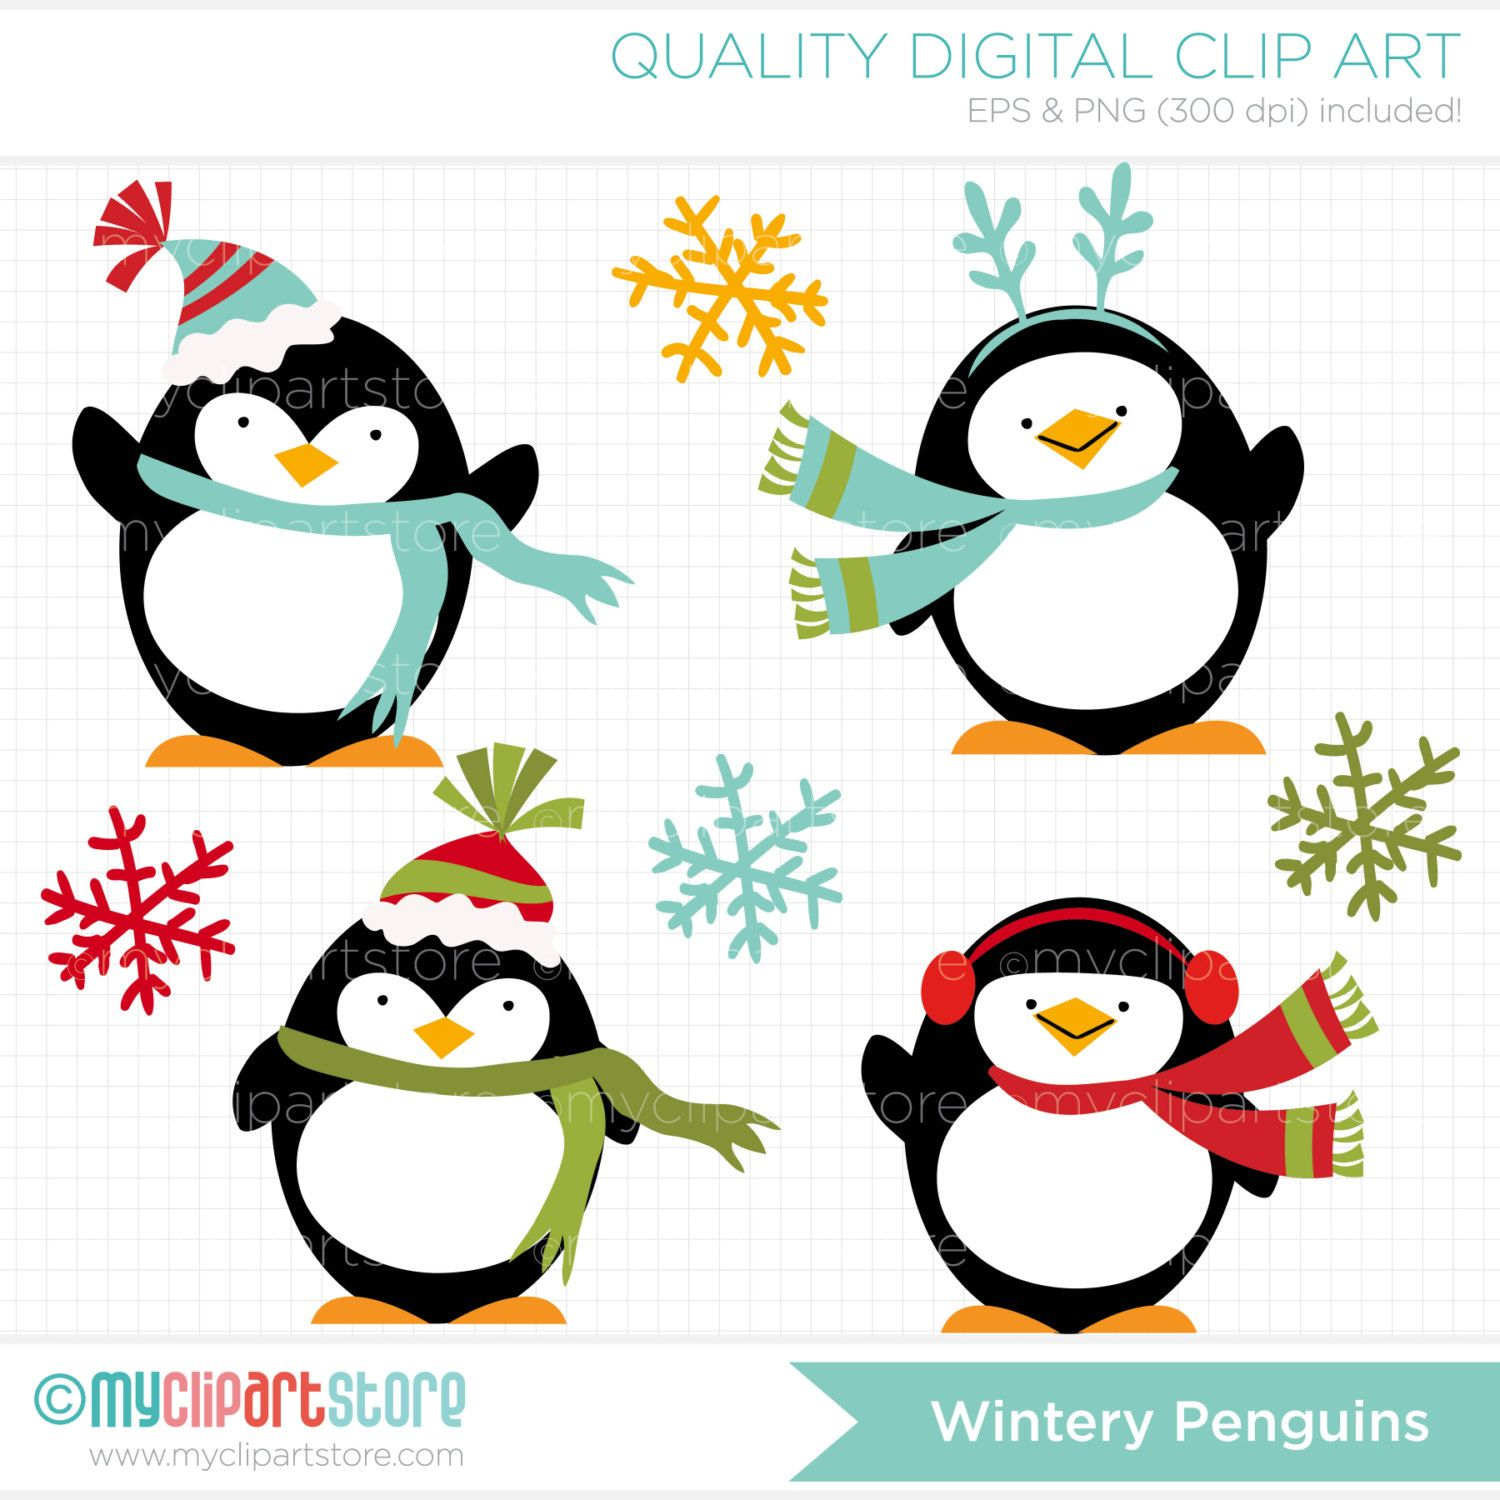 winter penguin clipart free large images decoupage prints rh pinterest com royalty free penguin clipart royalty free penguin clipart